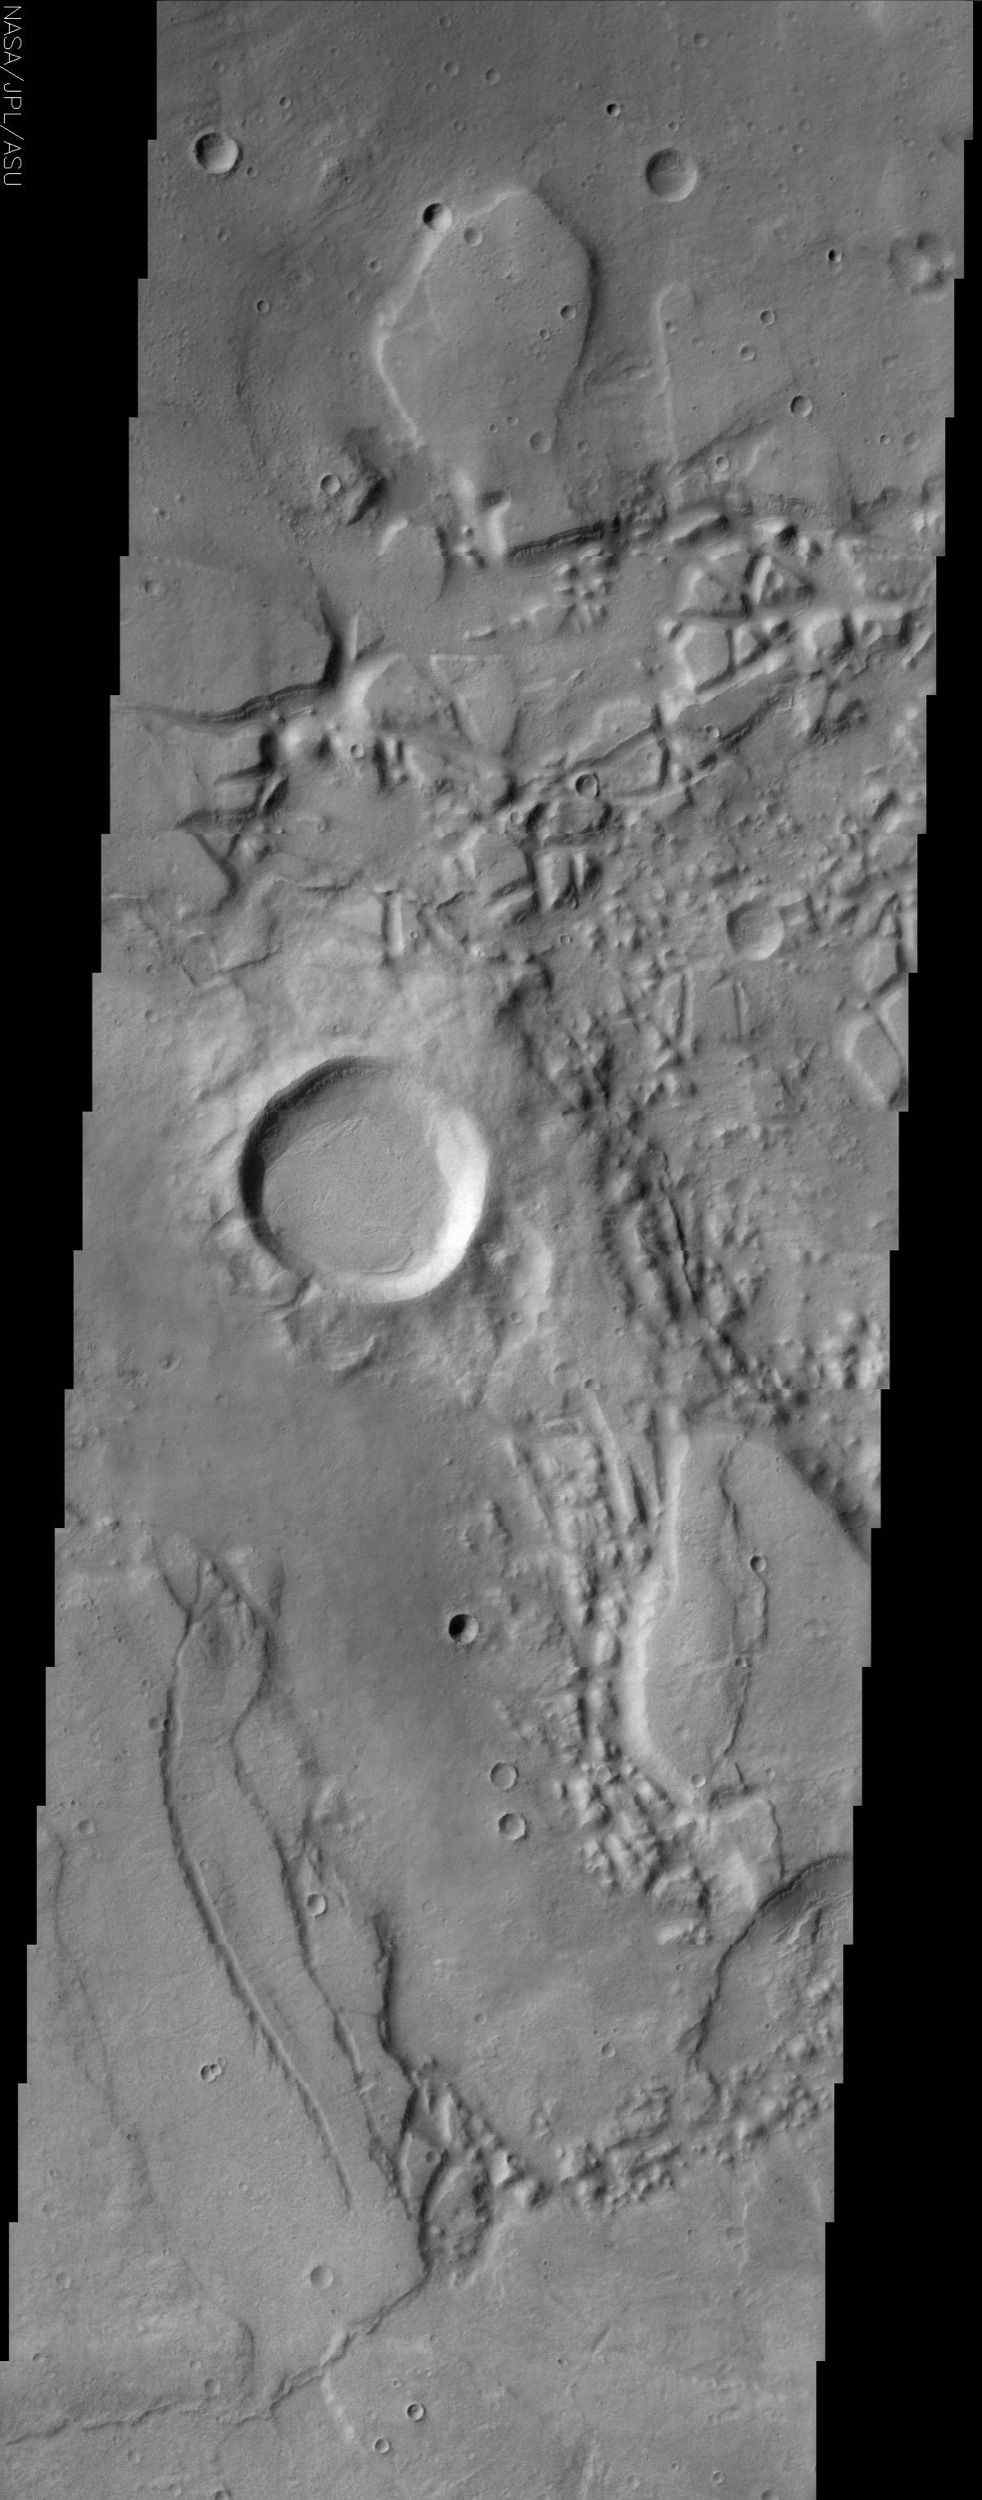 The jumbled, chaotic terrain in this NASA Mars Odyssey image may represent a source region for the Reull Vallis, one of the larger channel systems in the southern hemisphere of Mars.